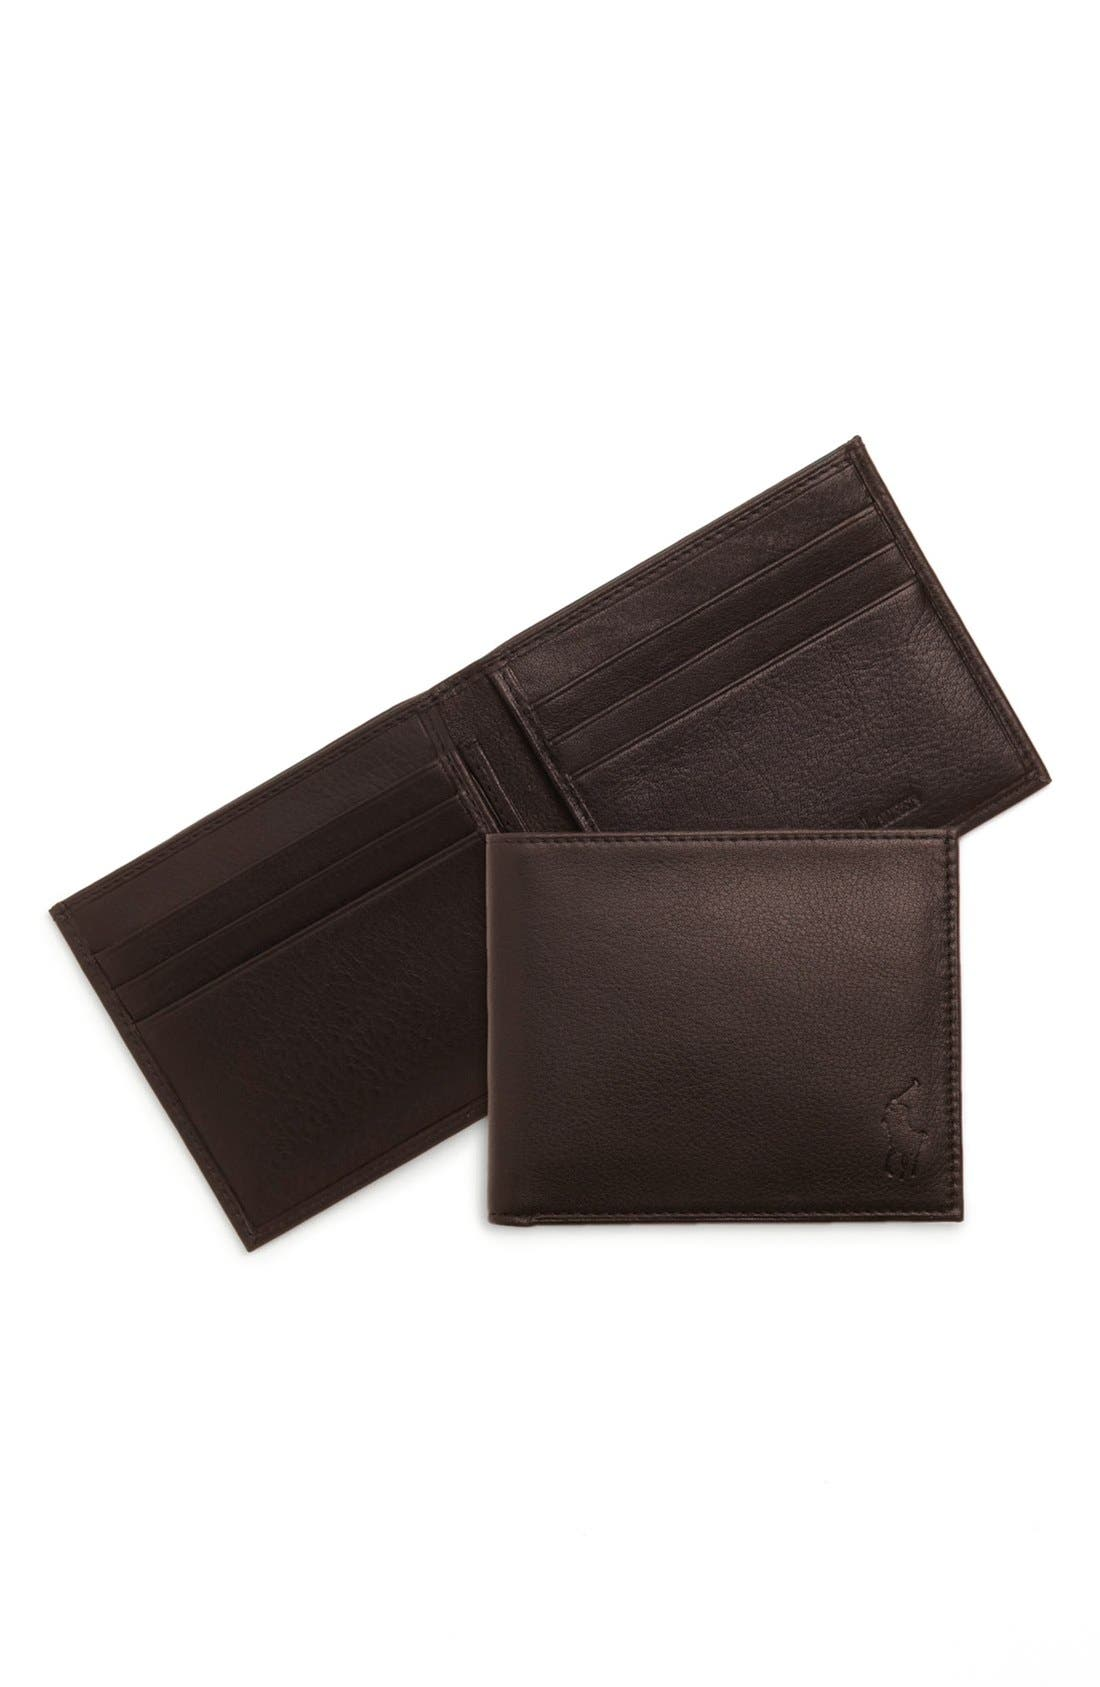 Alternate Image 1 Selected - Polo Ralph Lauren Bifold Wallet